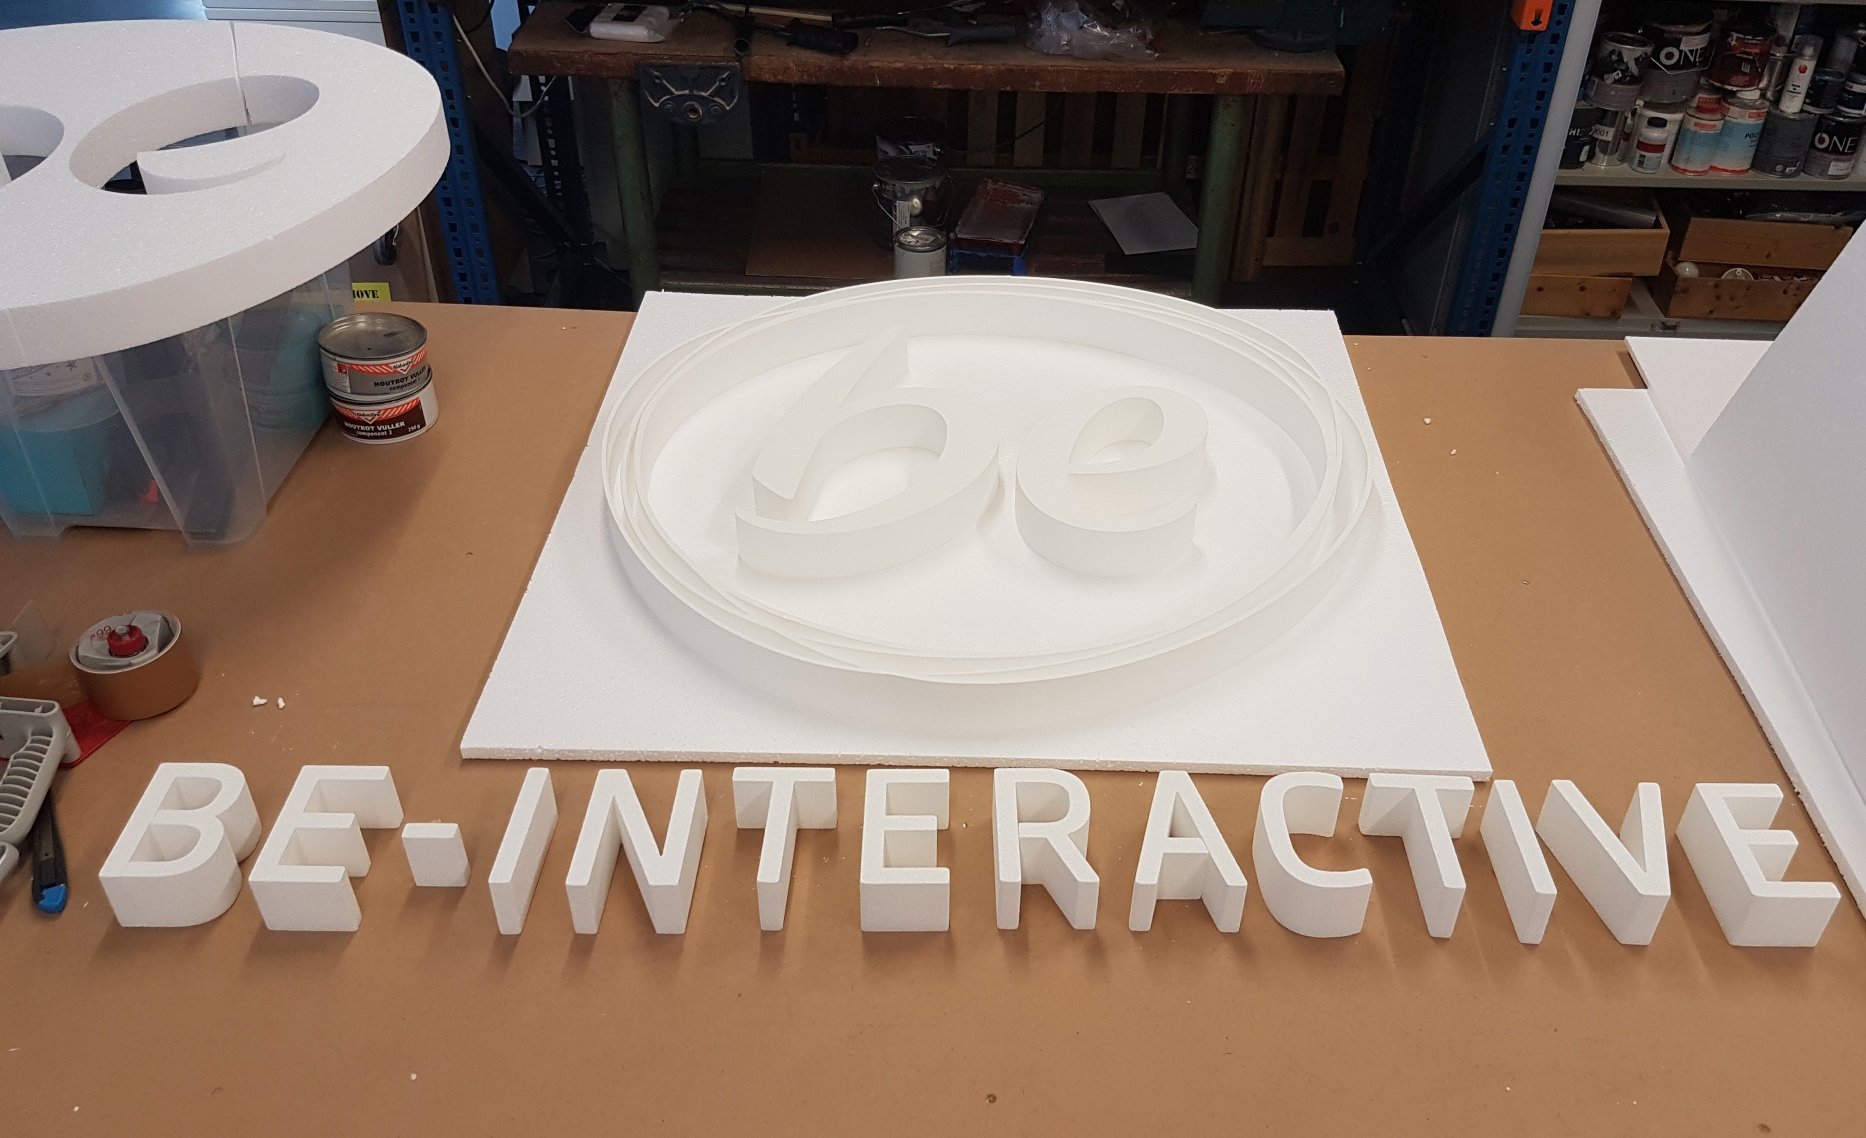 3dletters